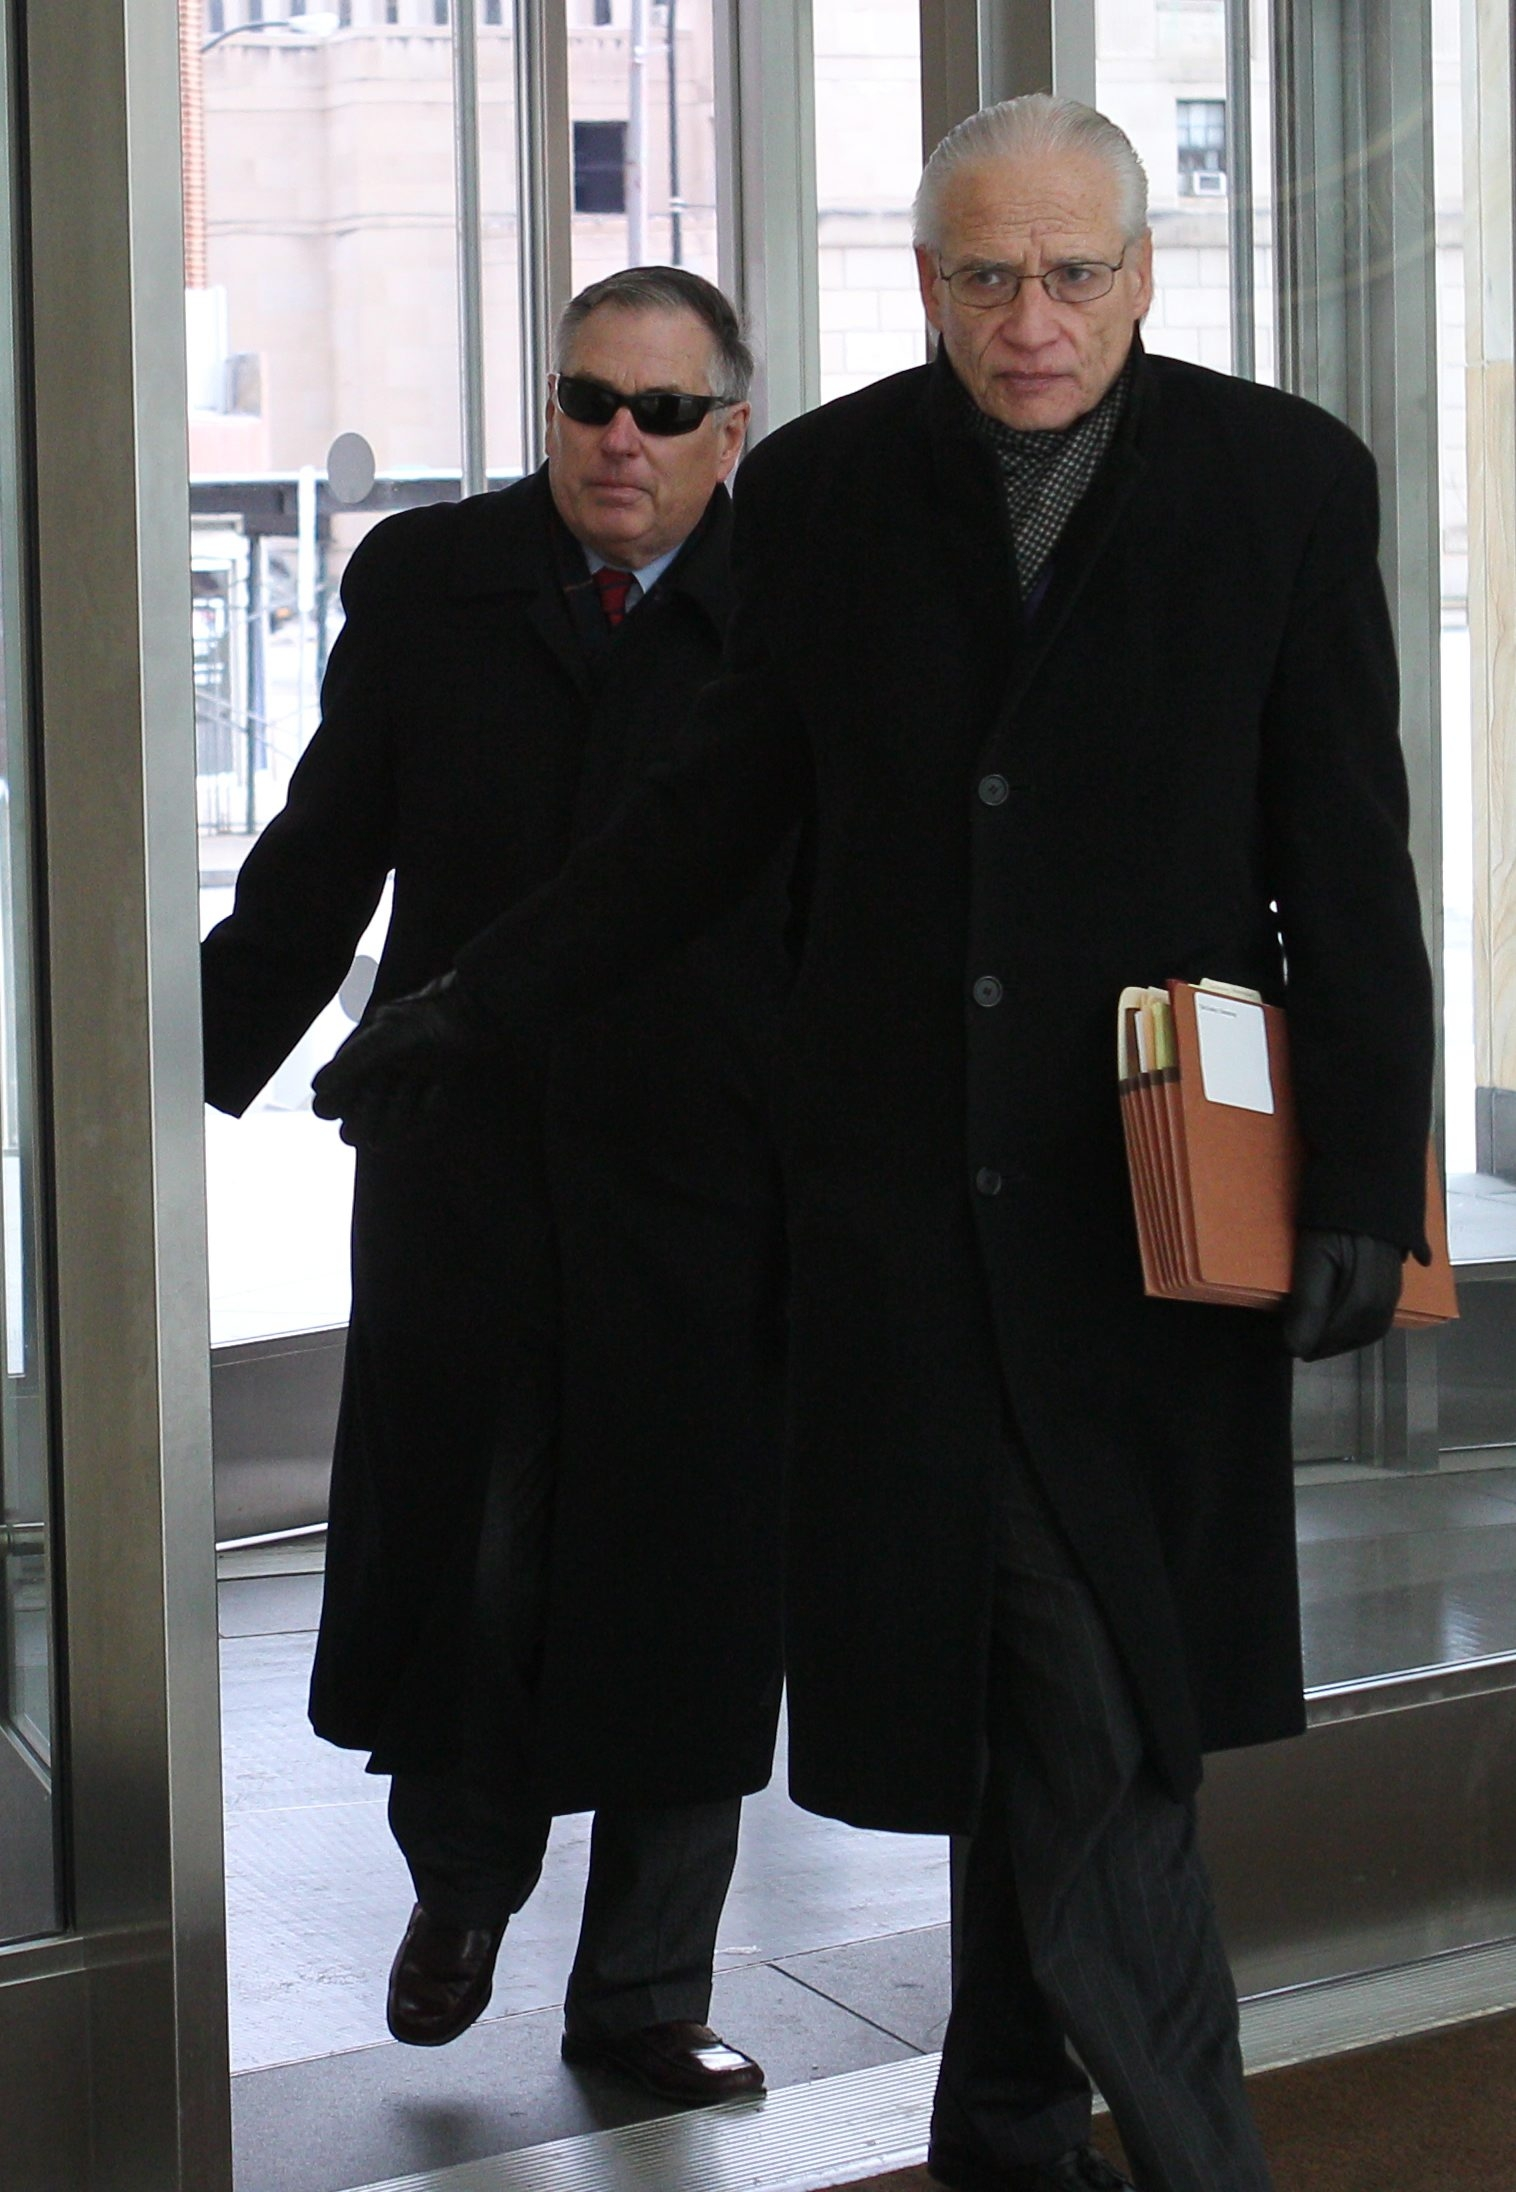 Tim Toohey, left,  enters federal court with his lawyer, Joel Daniels, for sentencing Monday.